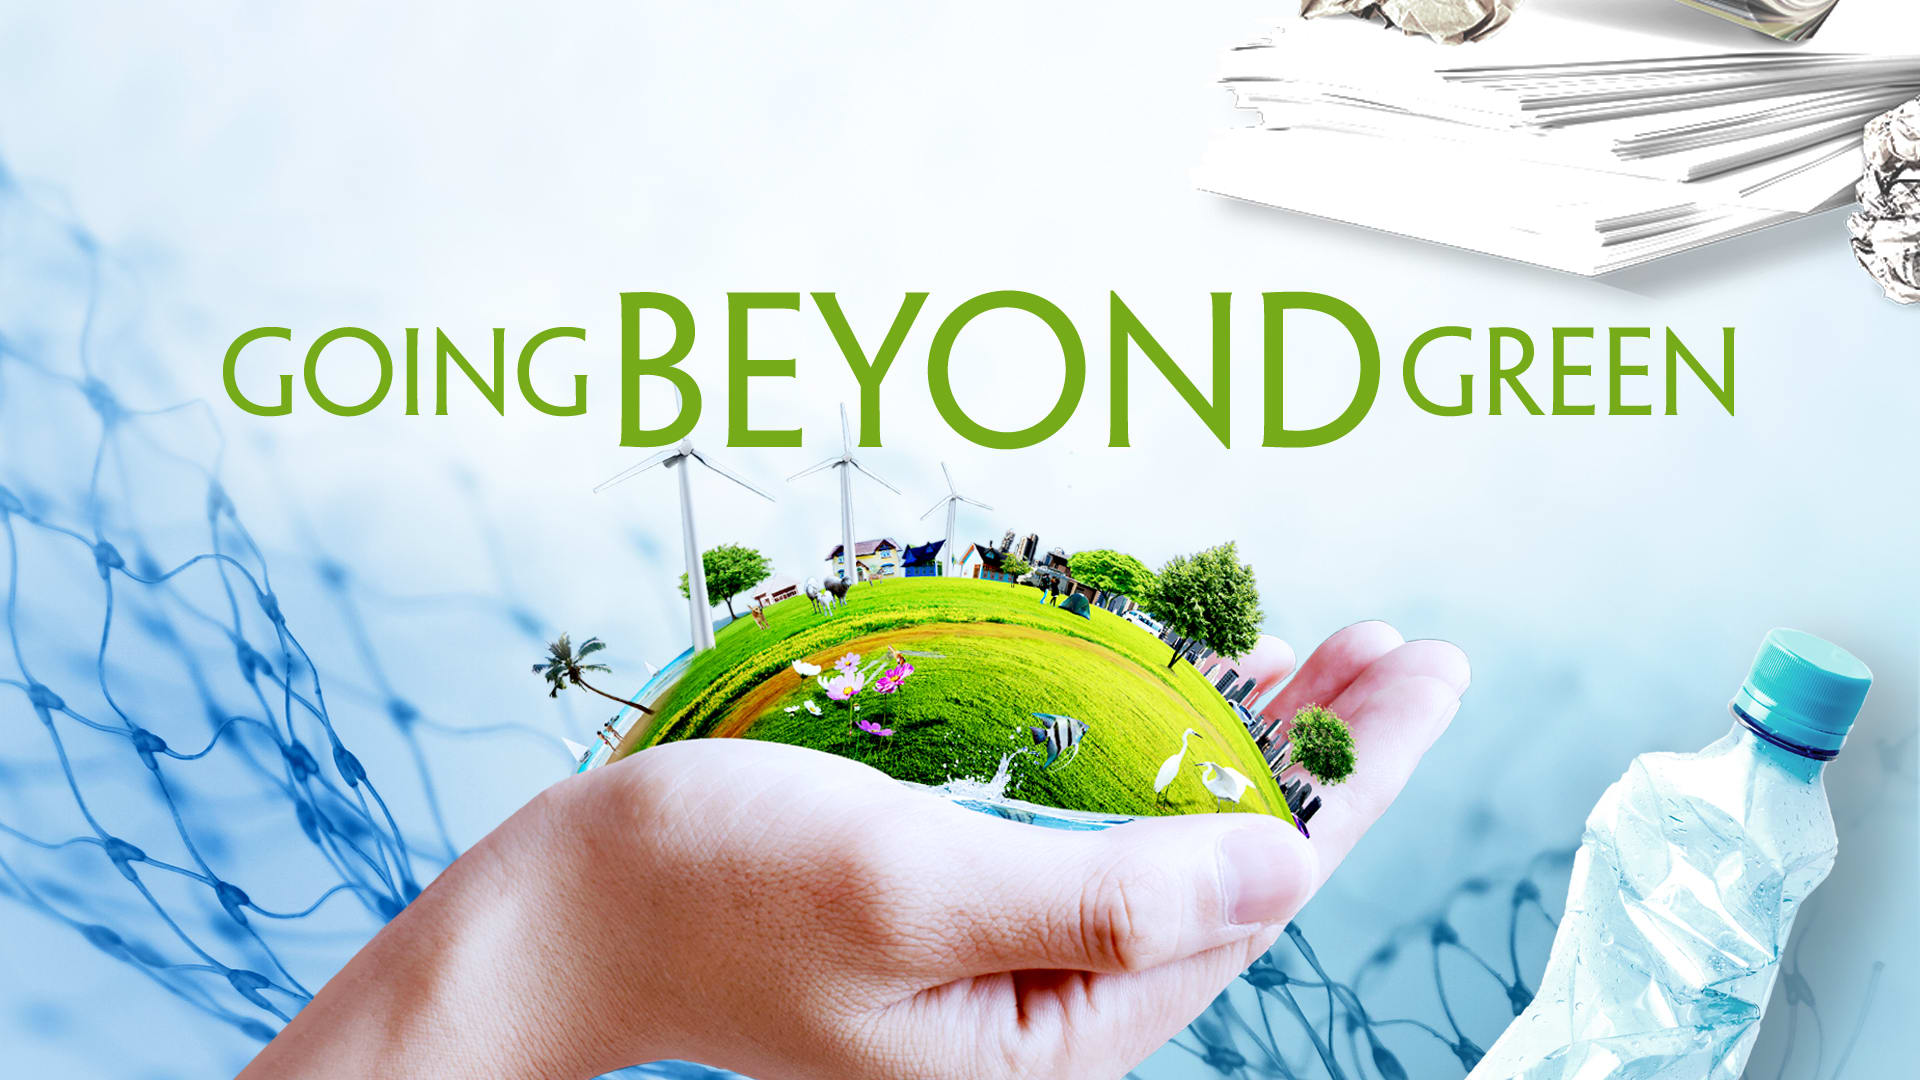 Going Beyond 'Green': How can we be truly sustainable?""